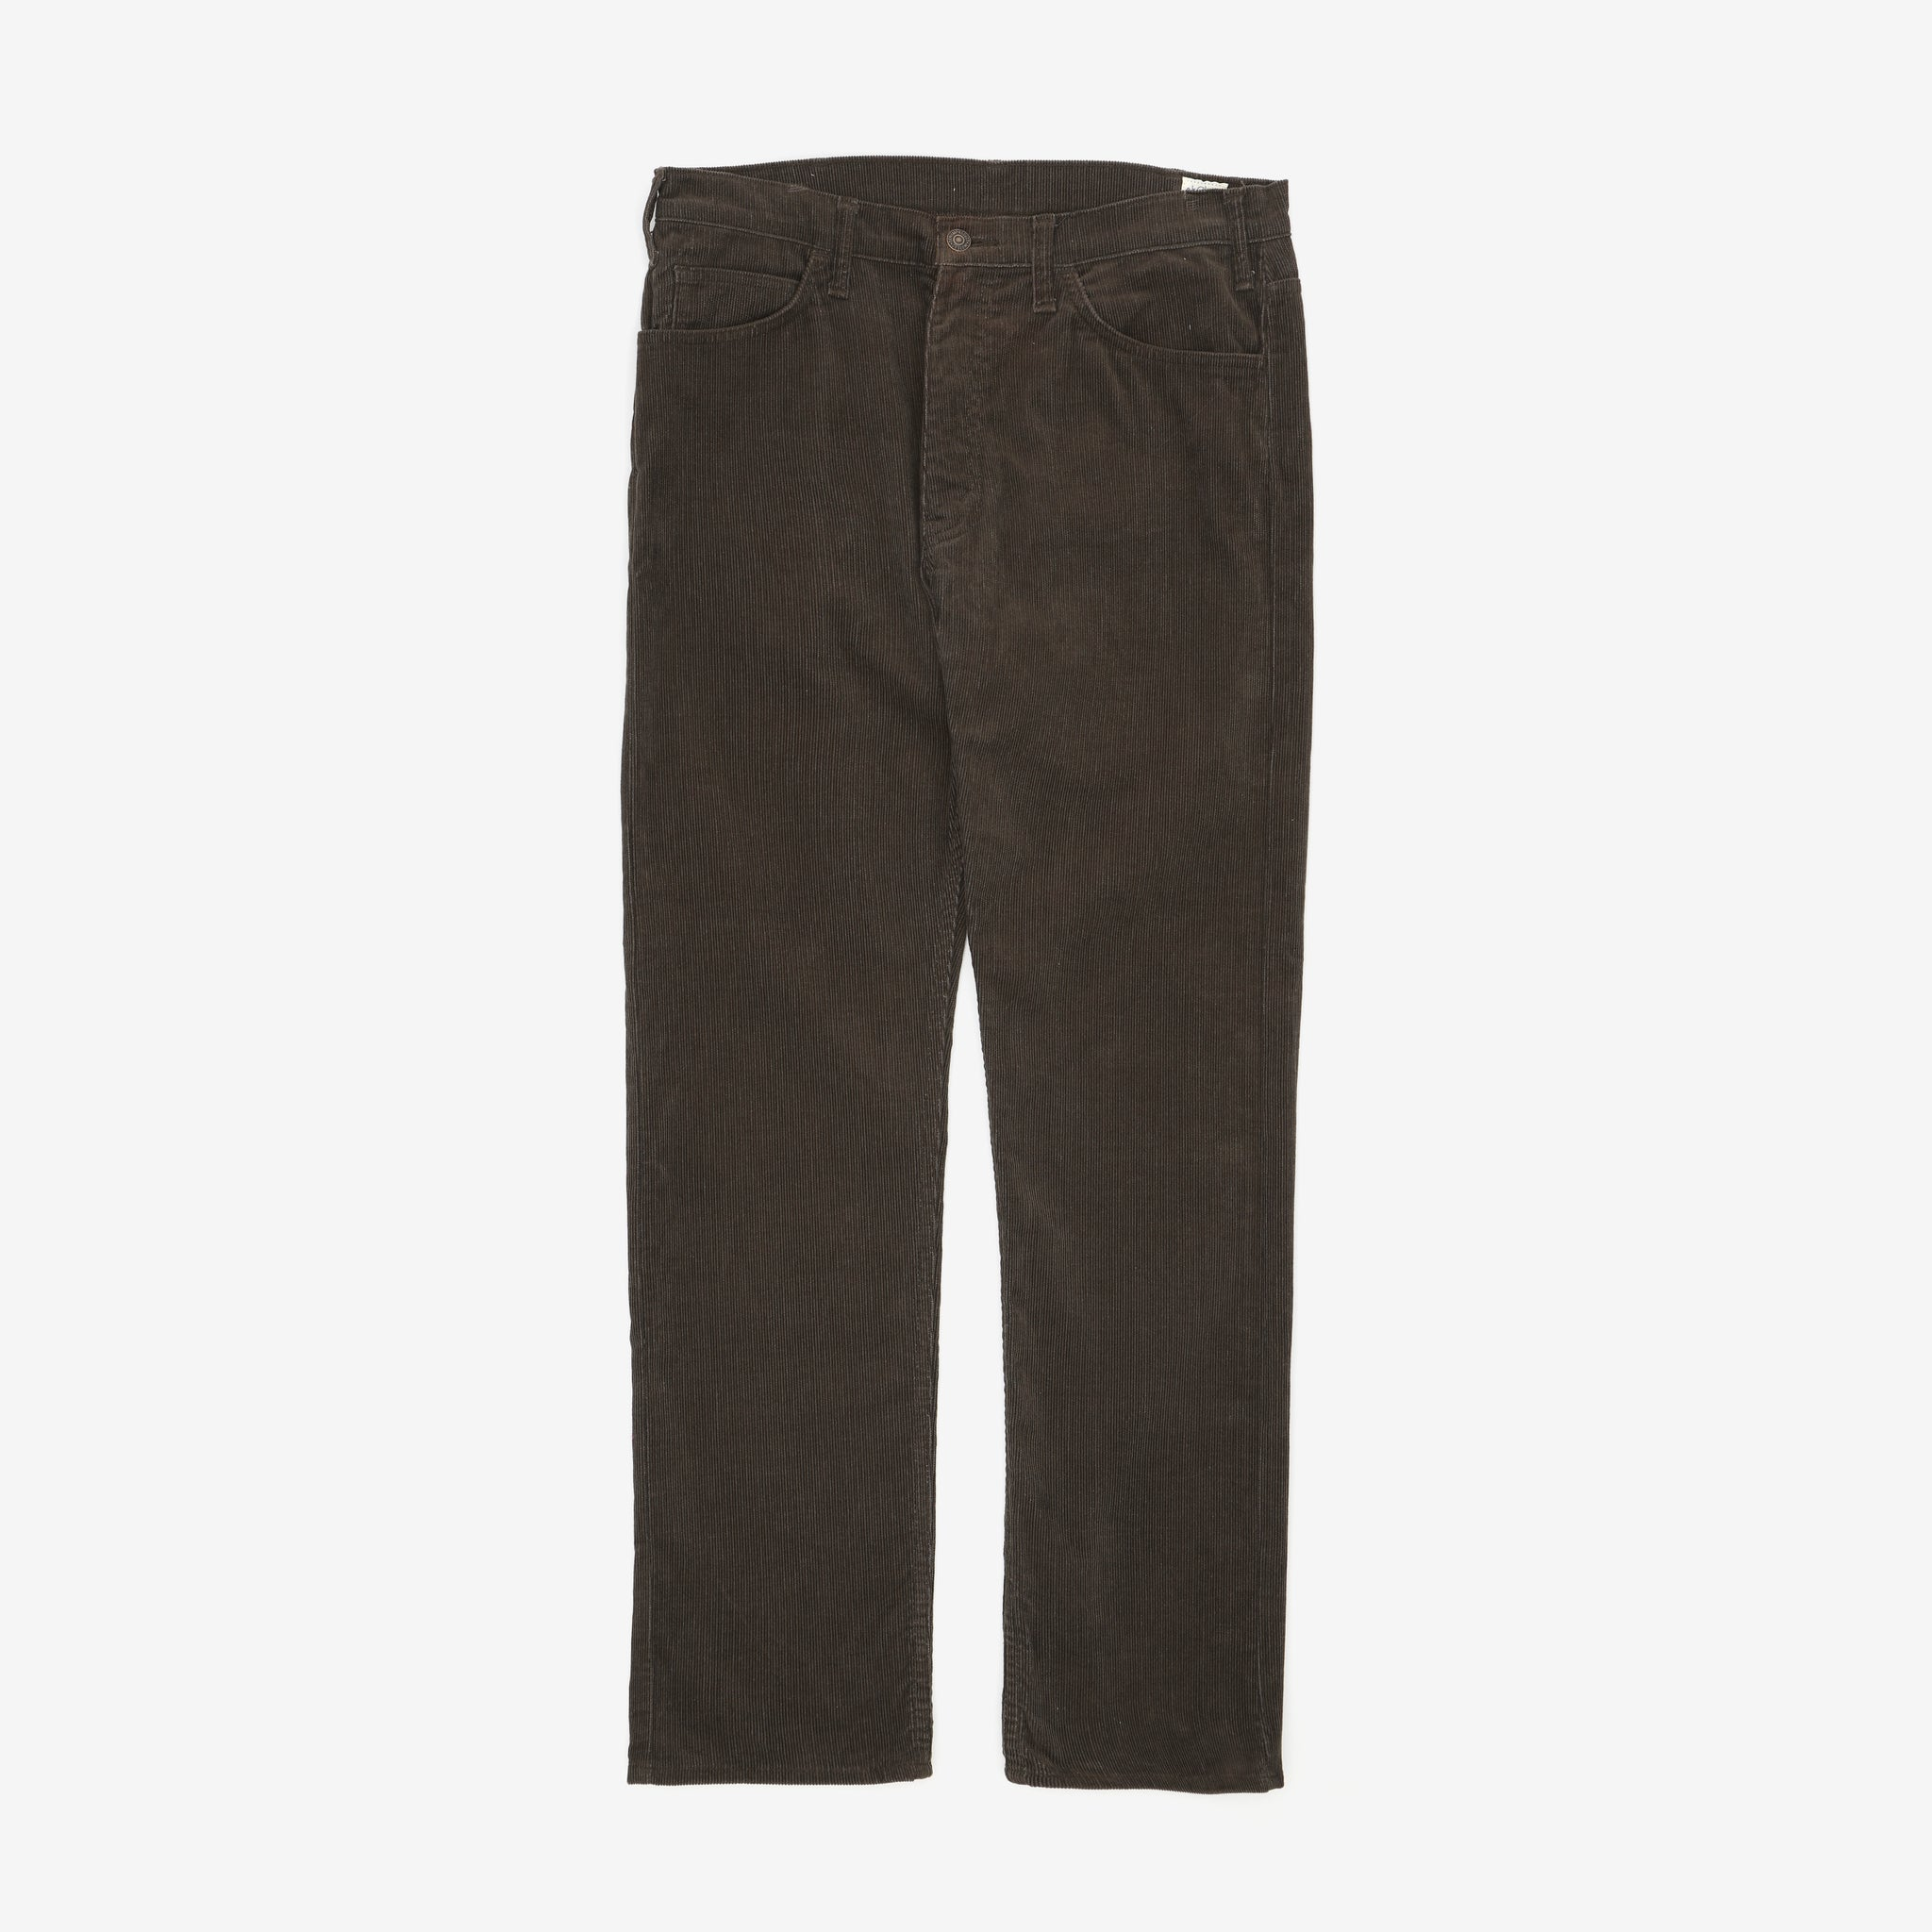 5 Pocket Slim Fit Corduroy Trousers